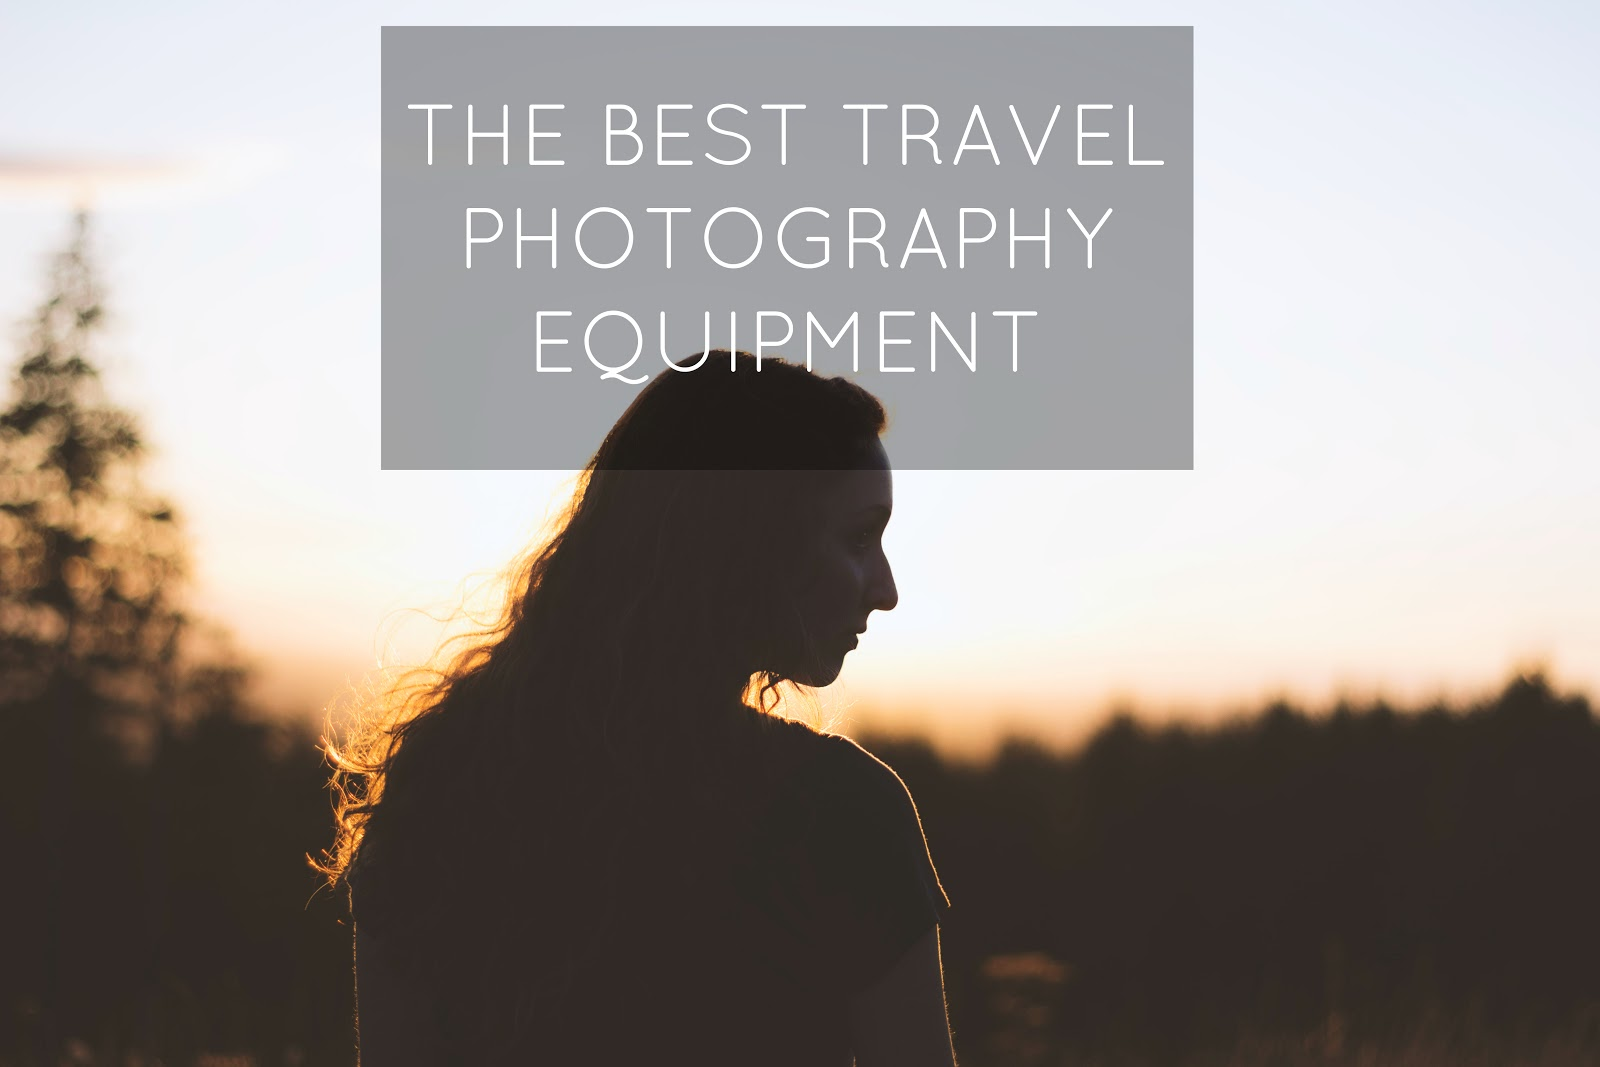 The Best Travel Photography Equipment